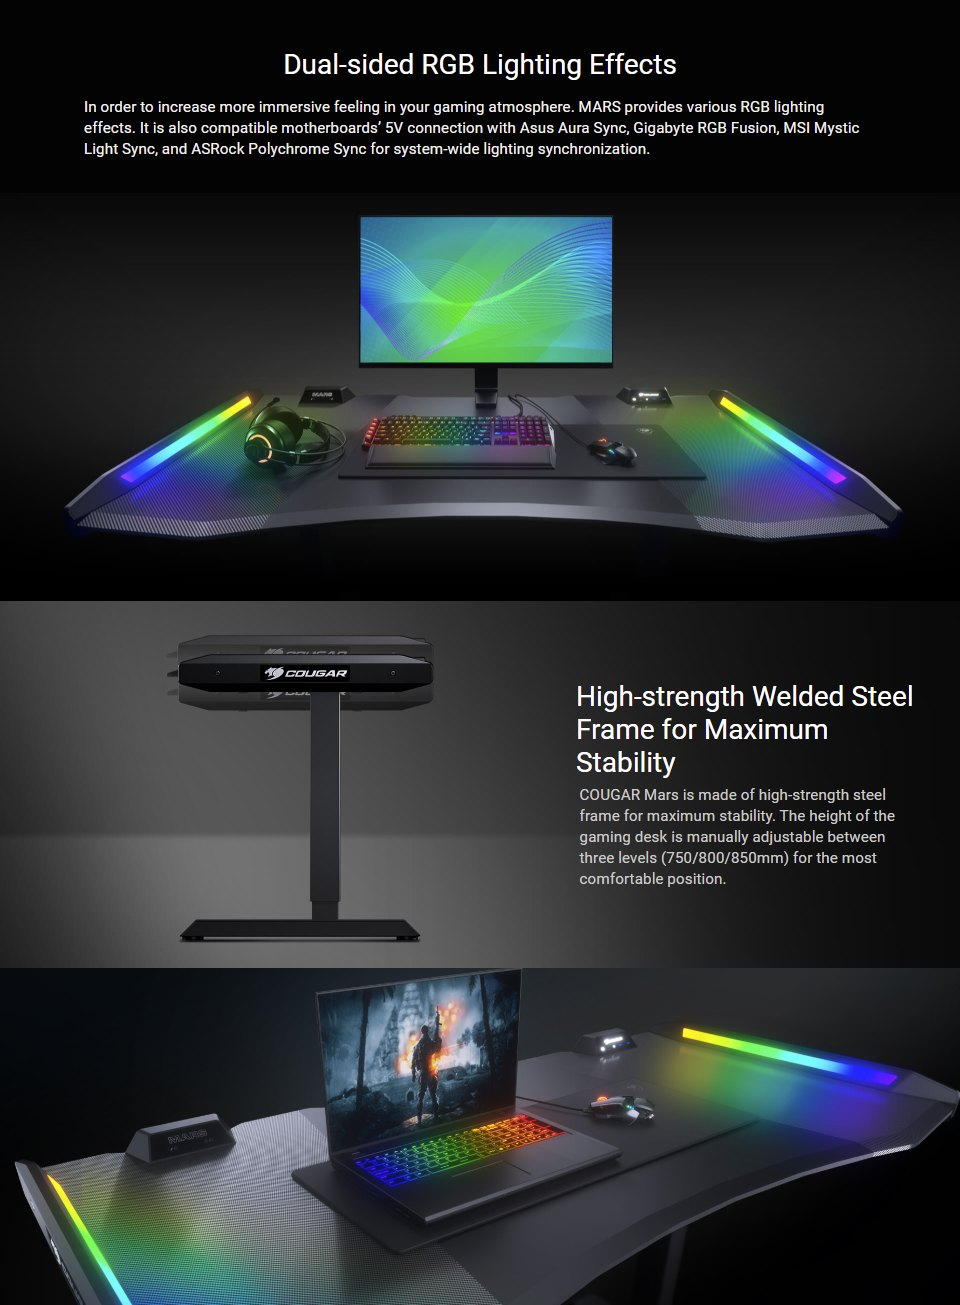 Cougar Mars Height Adjustable RGB Gaming Desk features 2